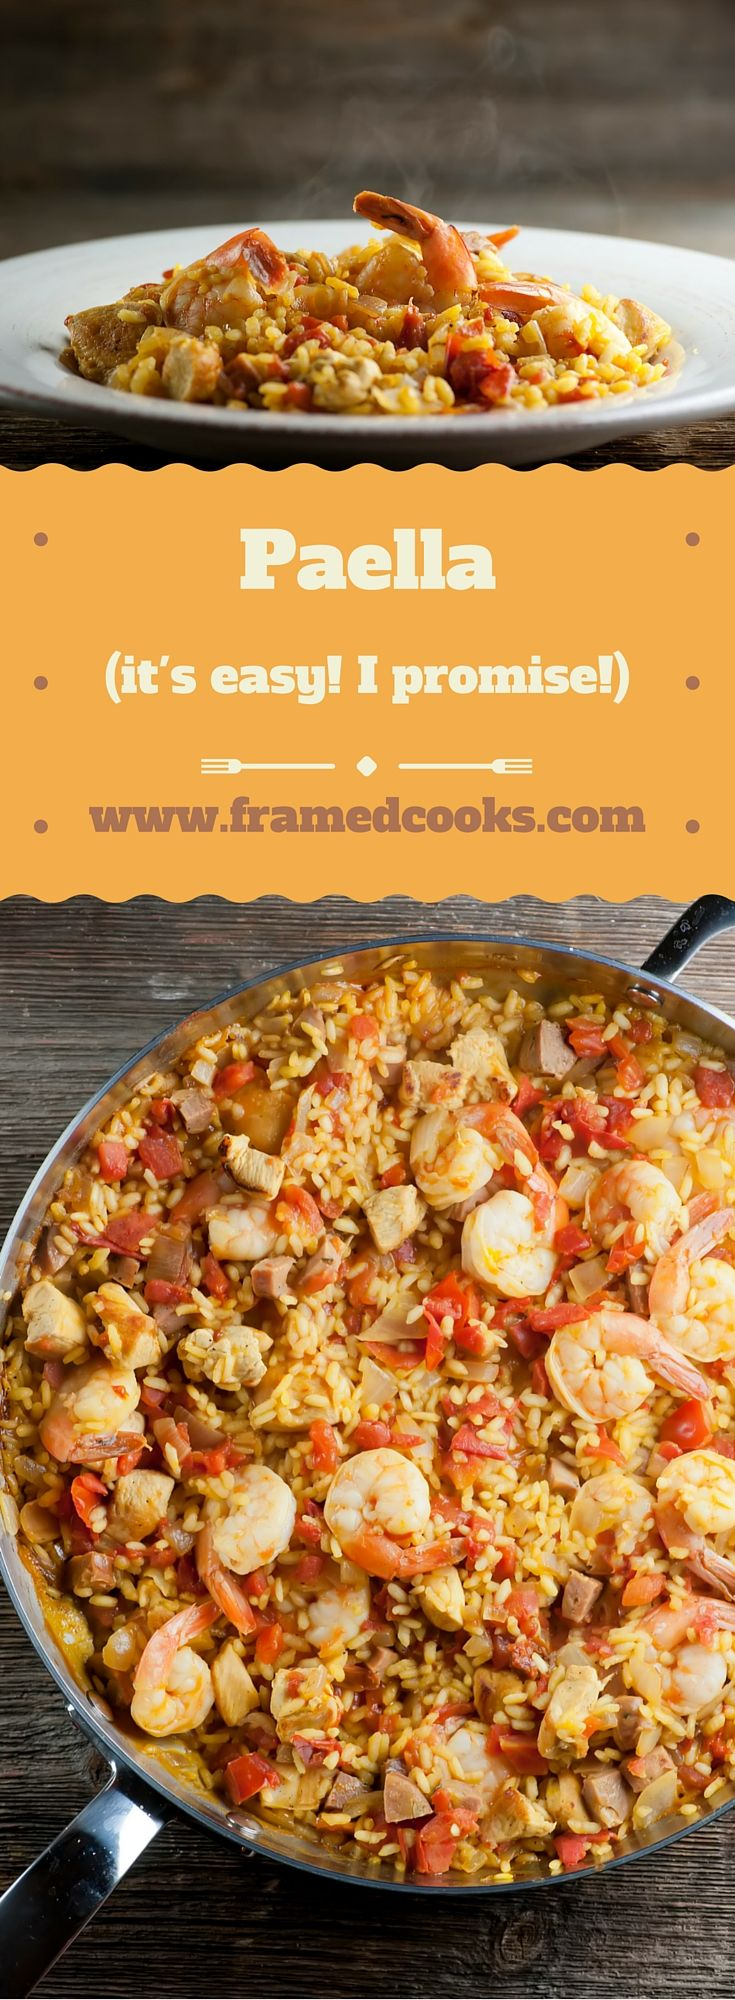 This recipe for easy paella is a show-stopping mixture of seasoned rice with shrimp, sausage and chicken. Simple and delicious!